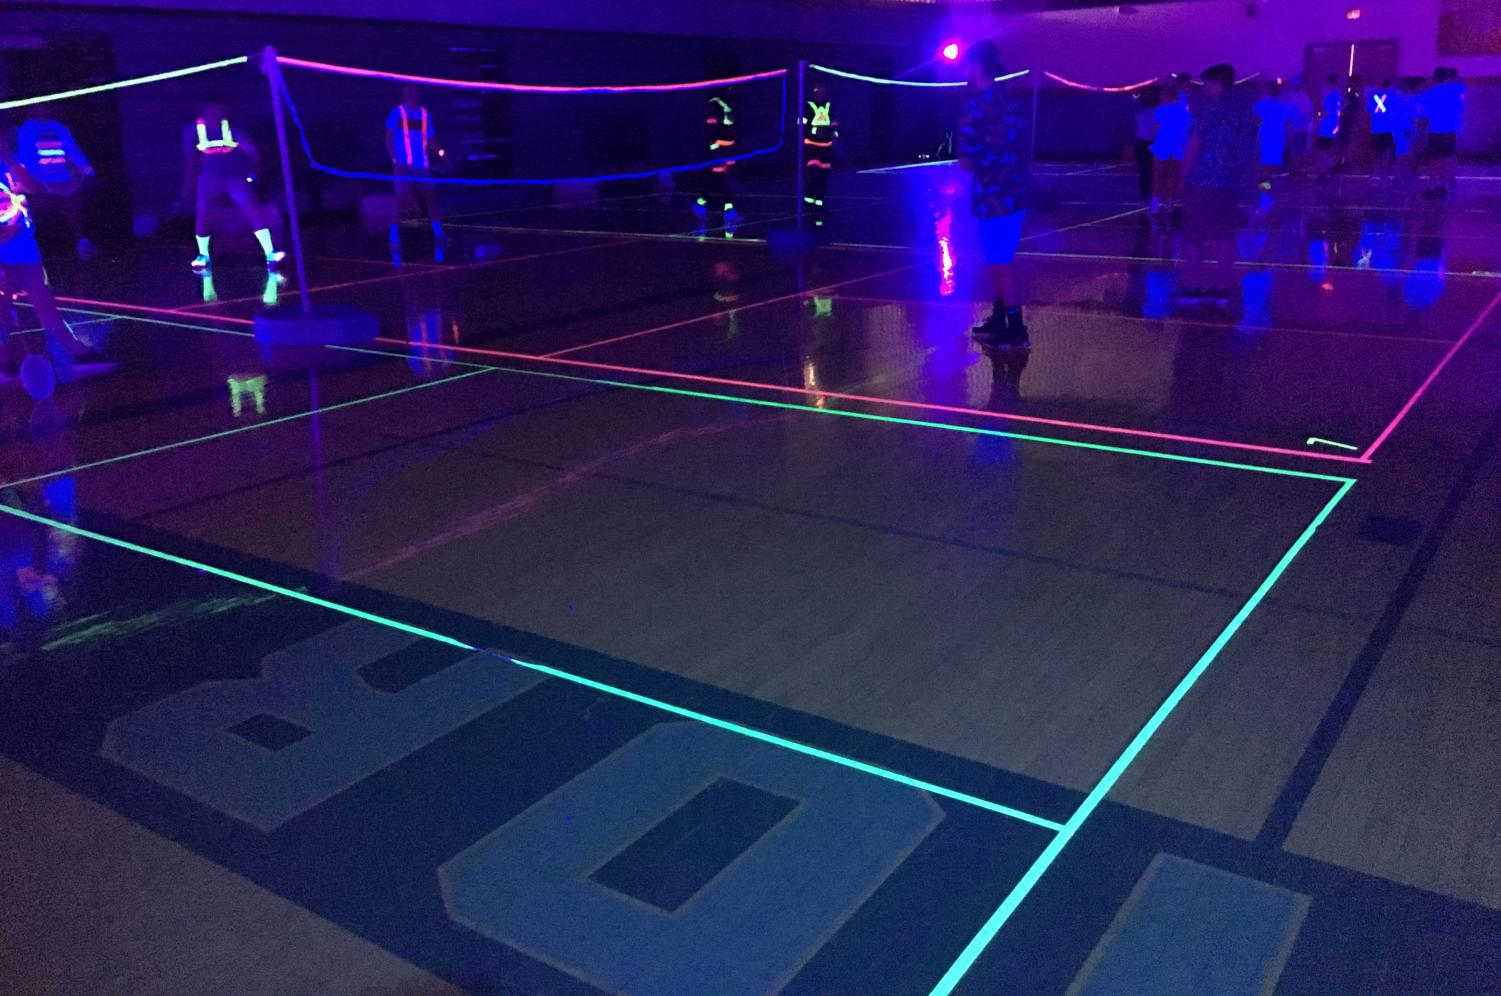 Pledge Makers held a Black Light Badminton competition on the March 22 in the SHS Spartan gymnasium.  The leaders patterned this inaugural event after Black Light Volleyball, which is held in the fall.